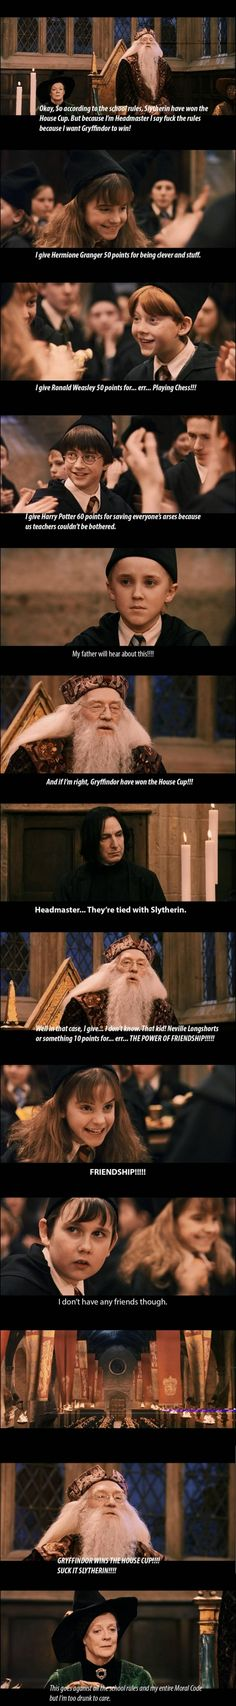 Dumbledore hates Slytherin, gryffindor... pretty much what happened lol